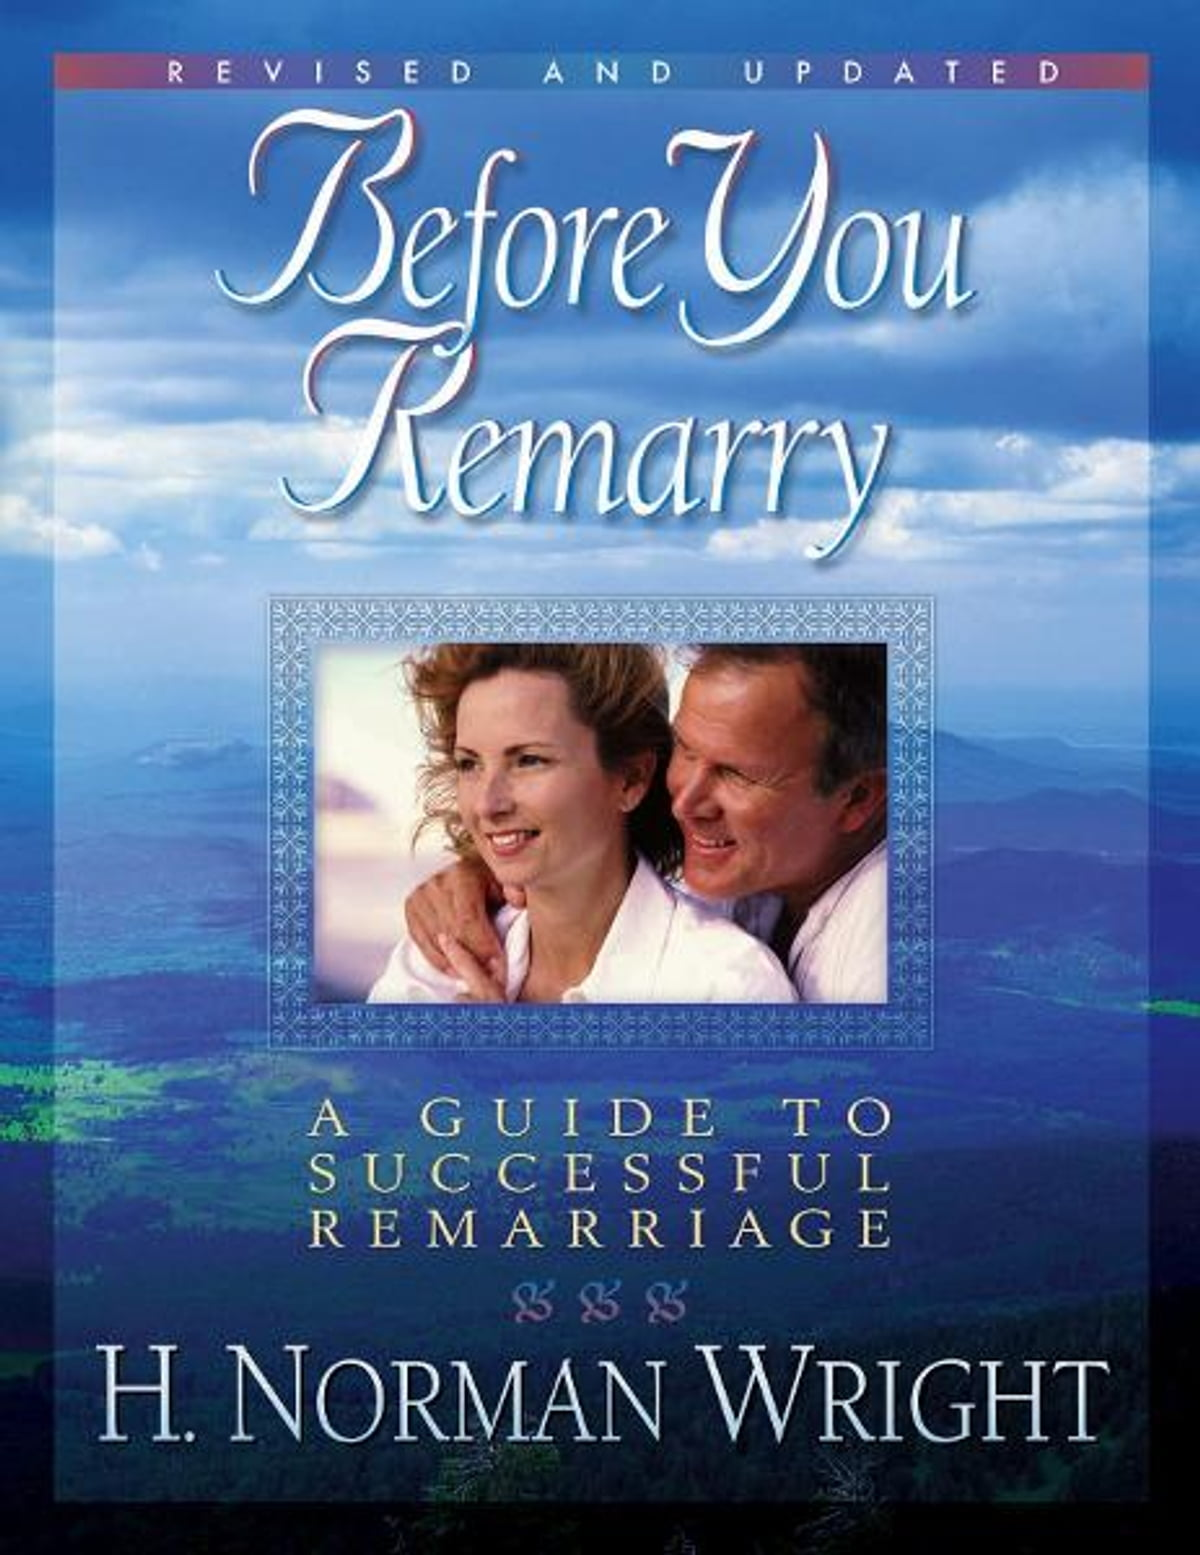 Before You Remarry eBook by H. Norman Wright - 9780736931243 | Rakuten Kobo